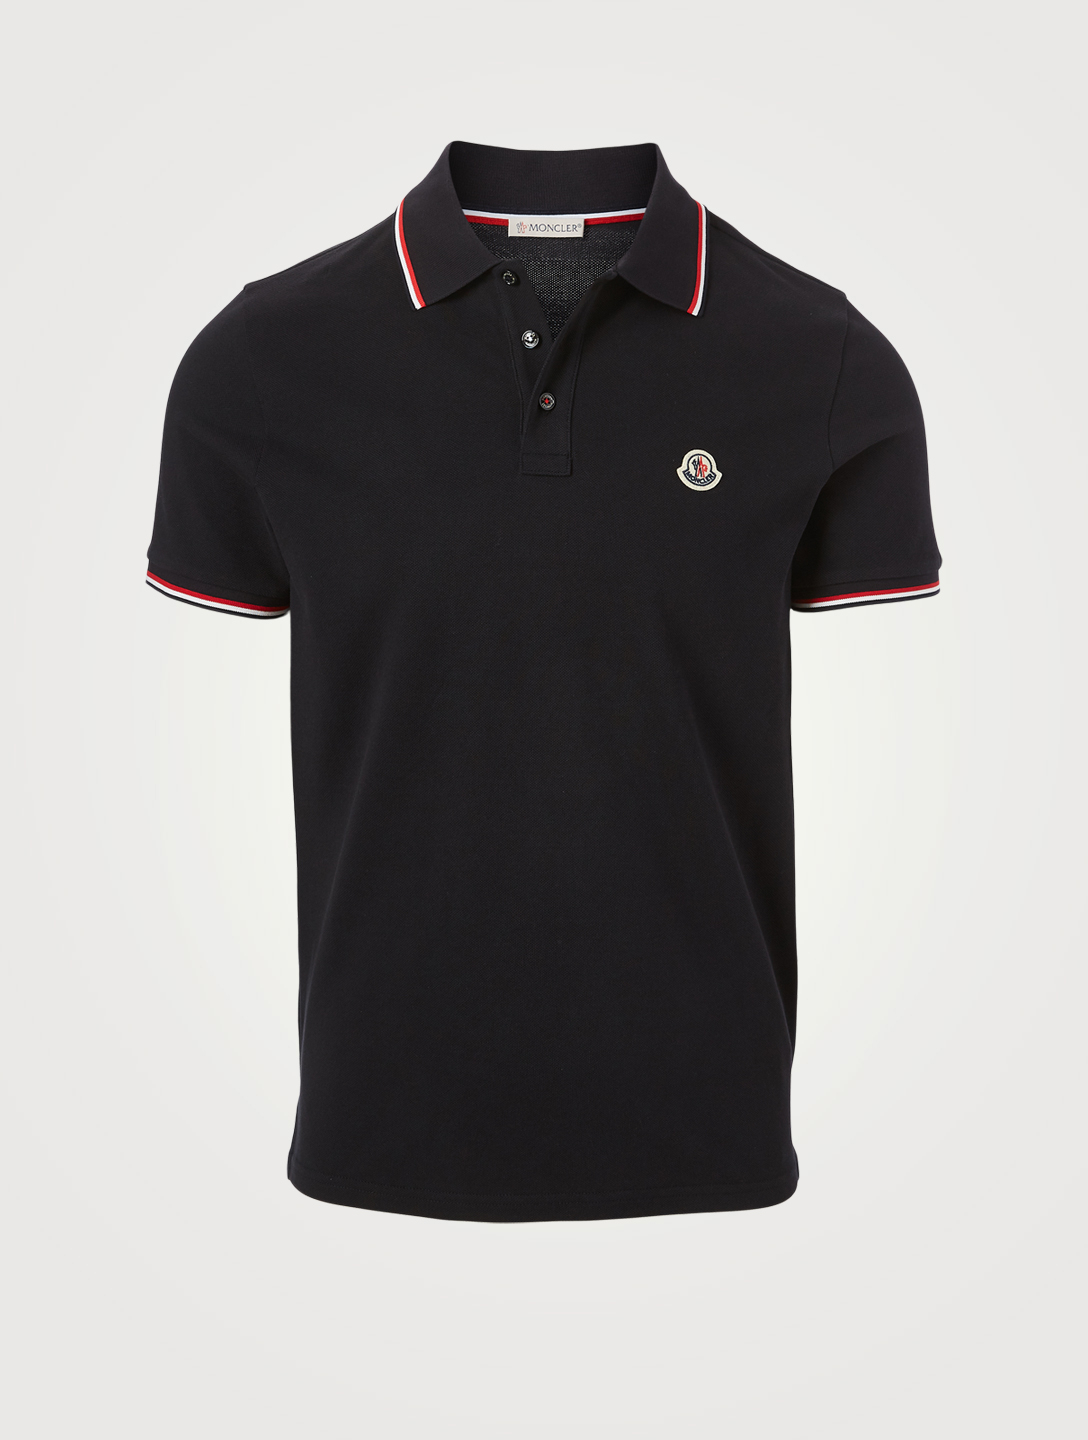 MONCLER Cotton Short-Sleeve Polo Shirt Men's Blue